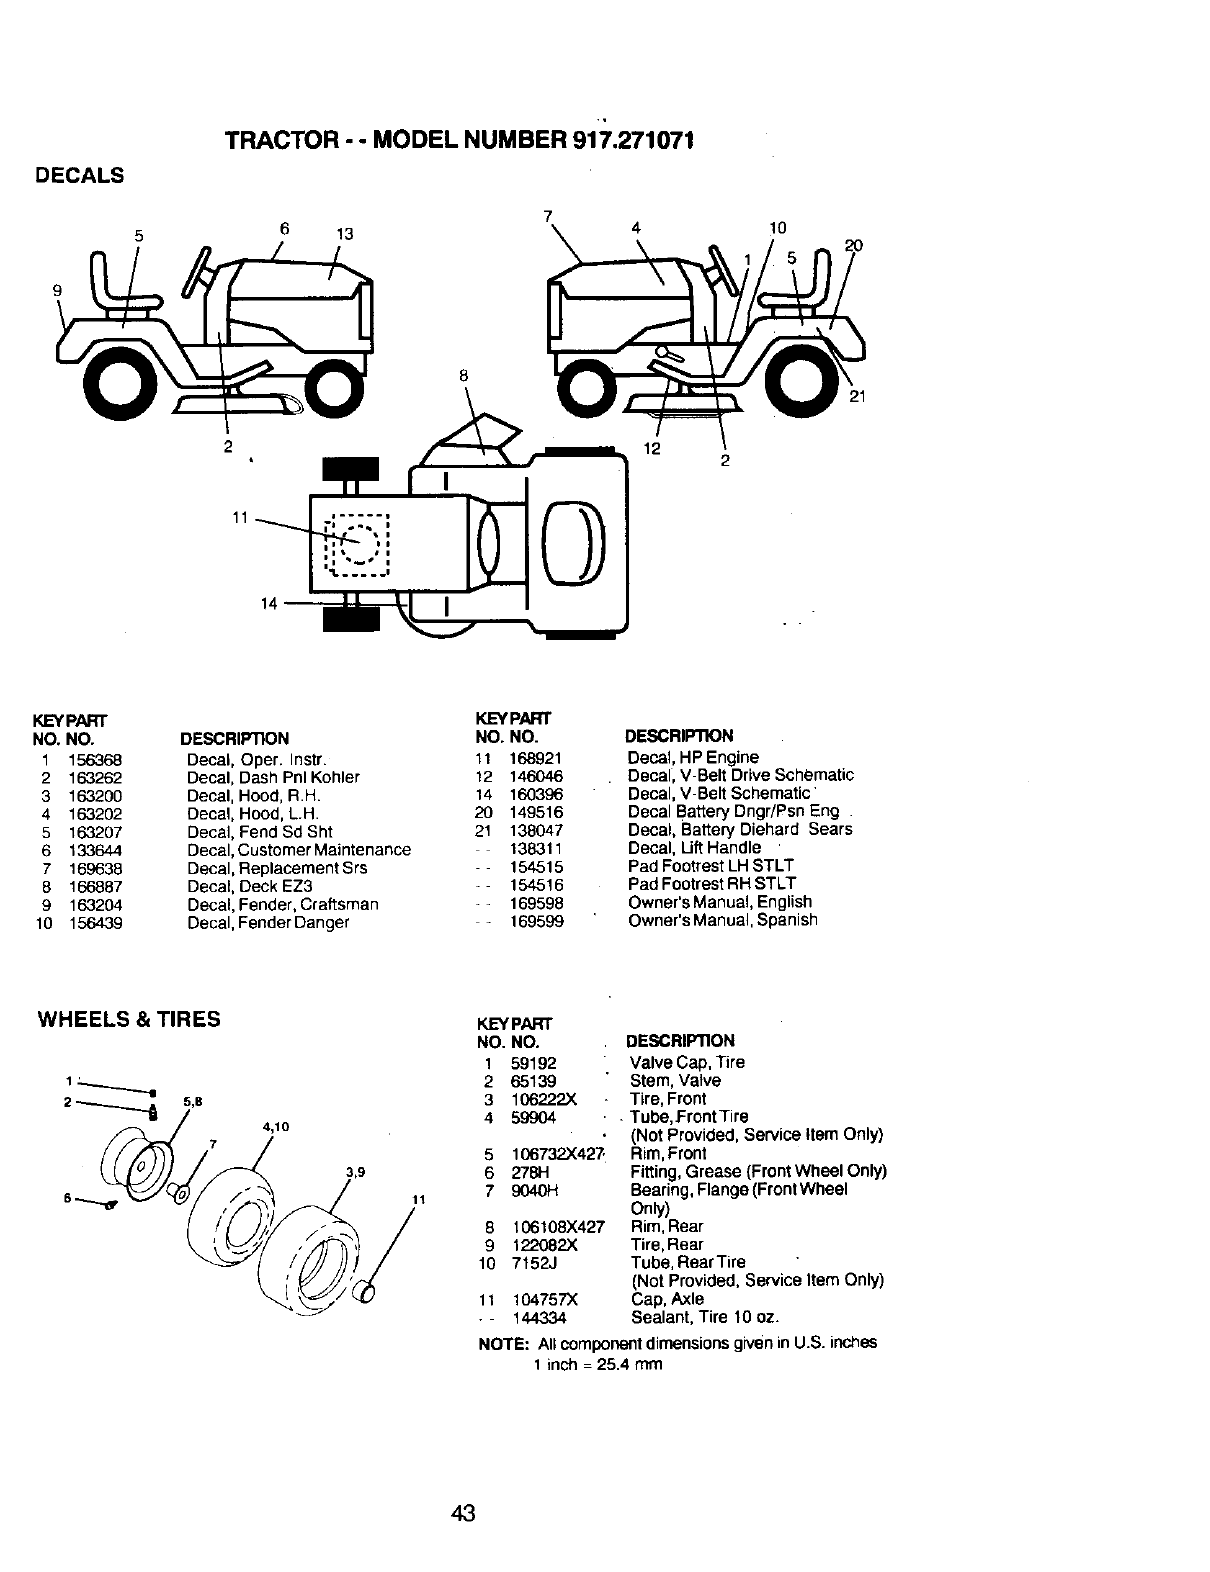 Murray Wiring Diagram 8 Hp Electrical Diagrams Lawn Mower For 917 271071 Craftsman Riding Circuit U2022 Garden Tractor Ignition